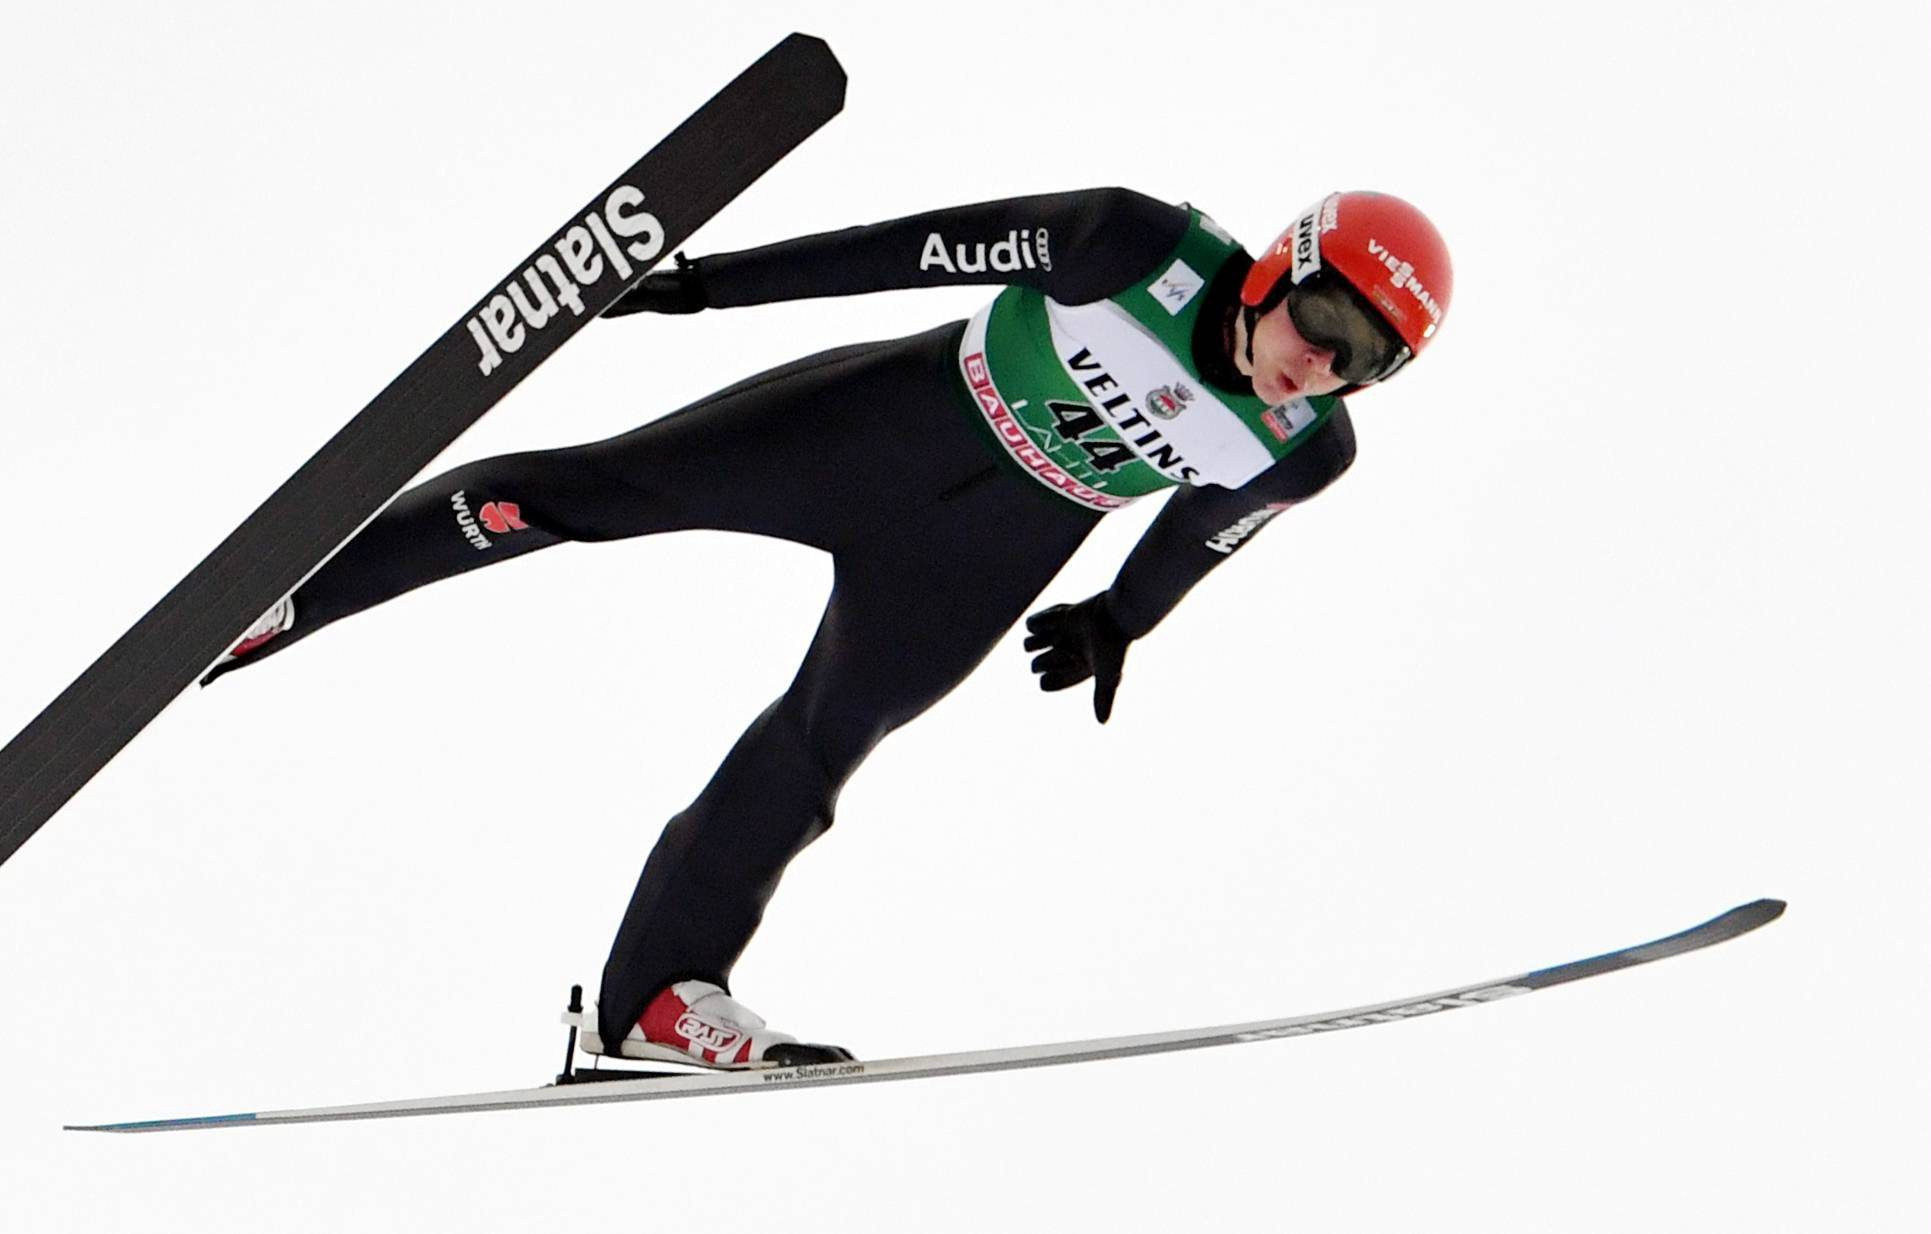 Schmid secures surprise qualification win at FIS Ski Jumping World Cup in Oslo